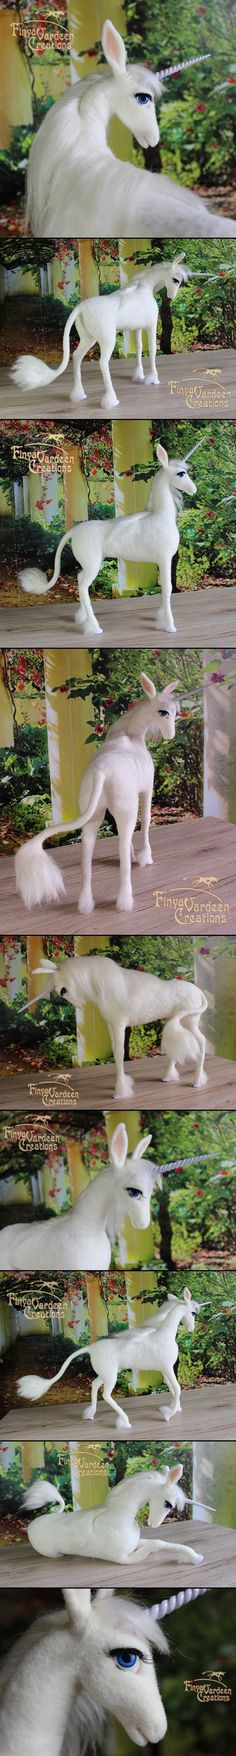 This unicorn was a customer order ~ sold! I felted this unicorn of wool with the needle. The mane and the tail are made of white mohai. The Last Unicorn - needle felted - (sold) Needle Felted Animals, Felt Animals, Needle Felting, Unicorn Mom, The Last Unicorn, Cute Crafts, Felt Crafts, Plush Horse, Unicorn Tattoos